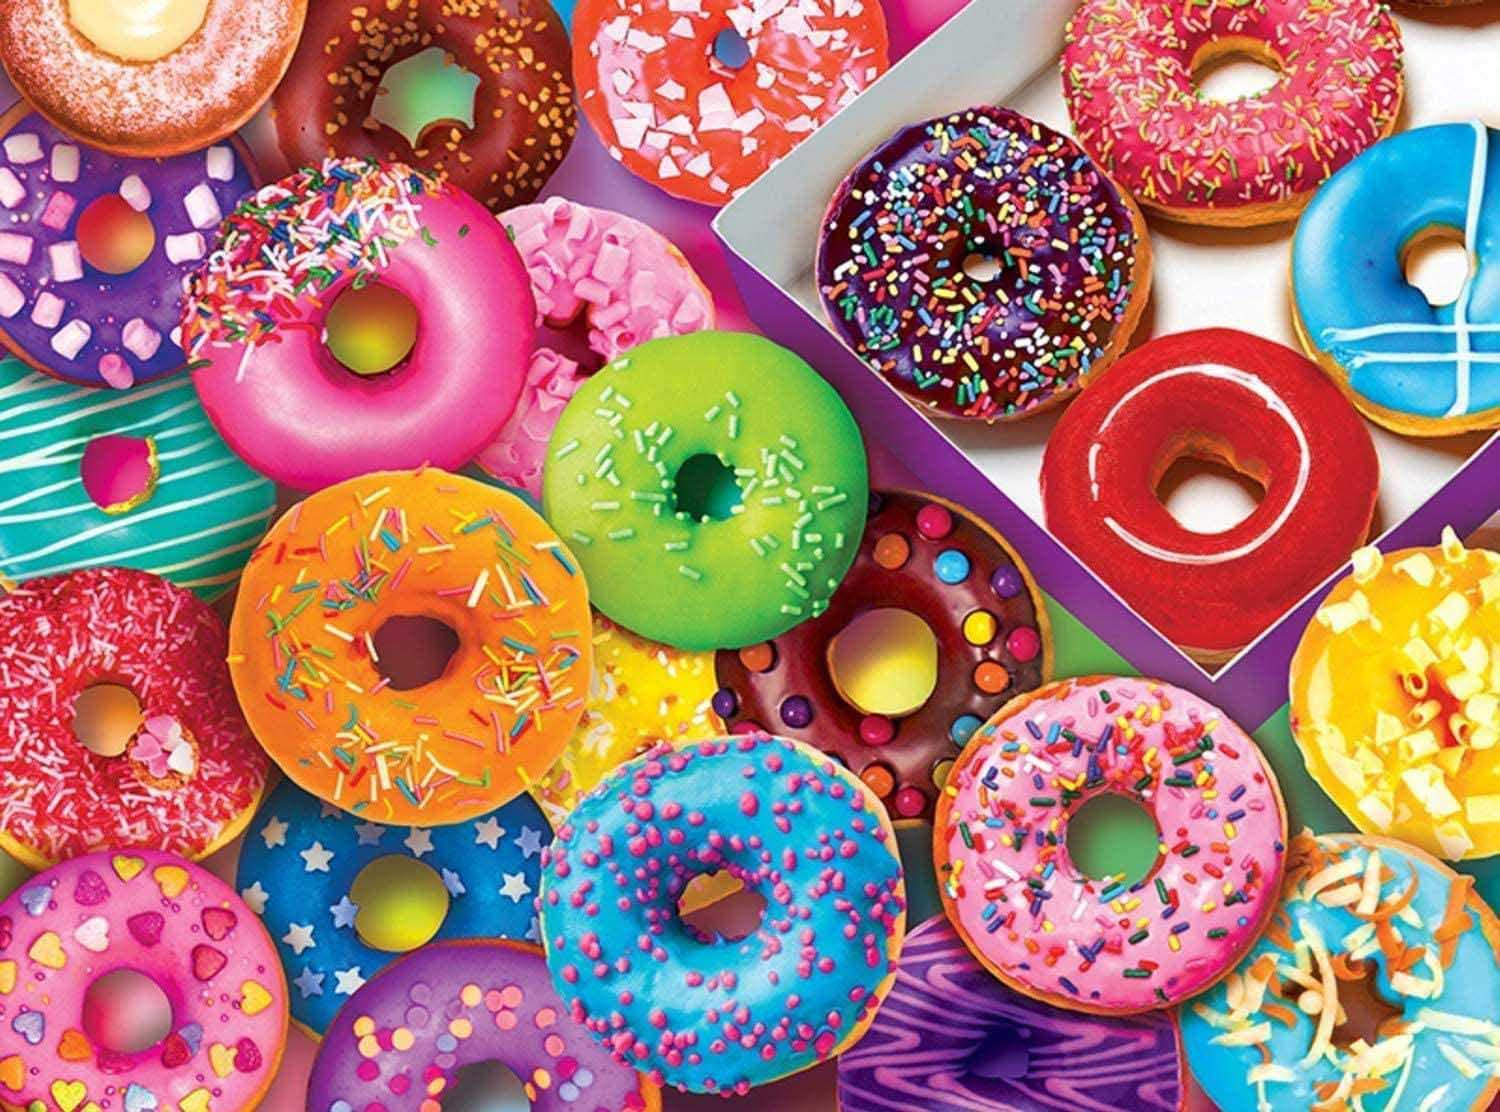 I Love Donuts Sweets Jigsaw Puzzle